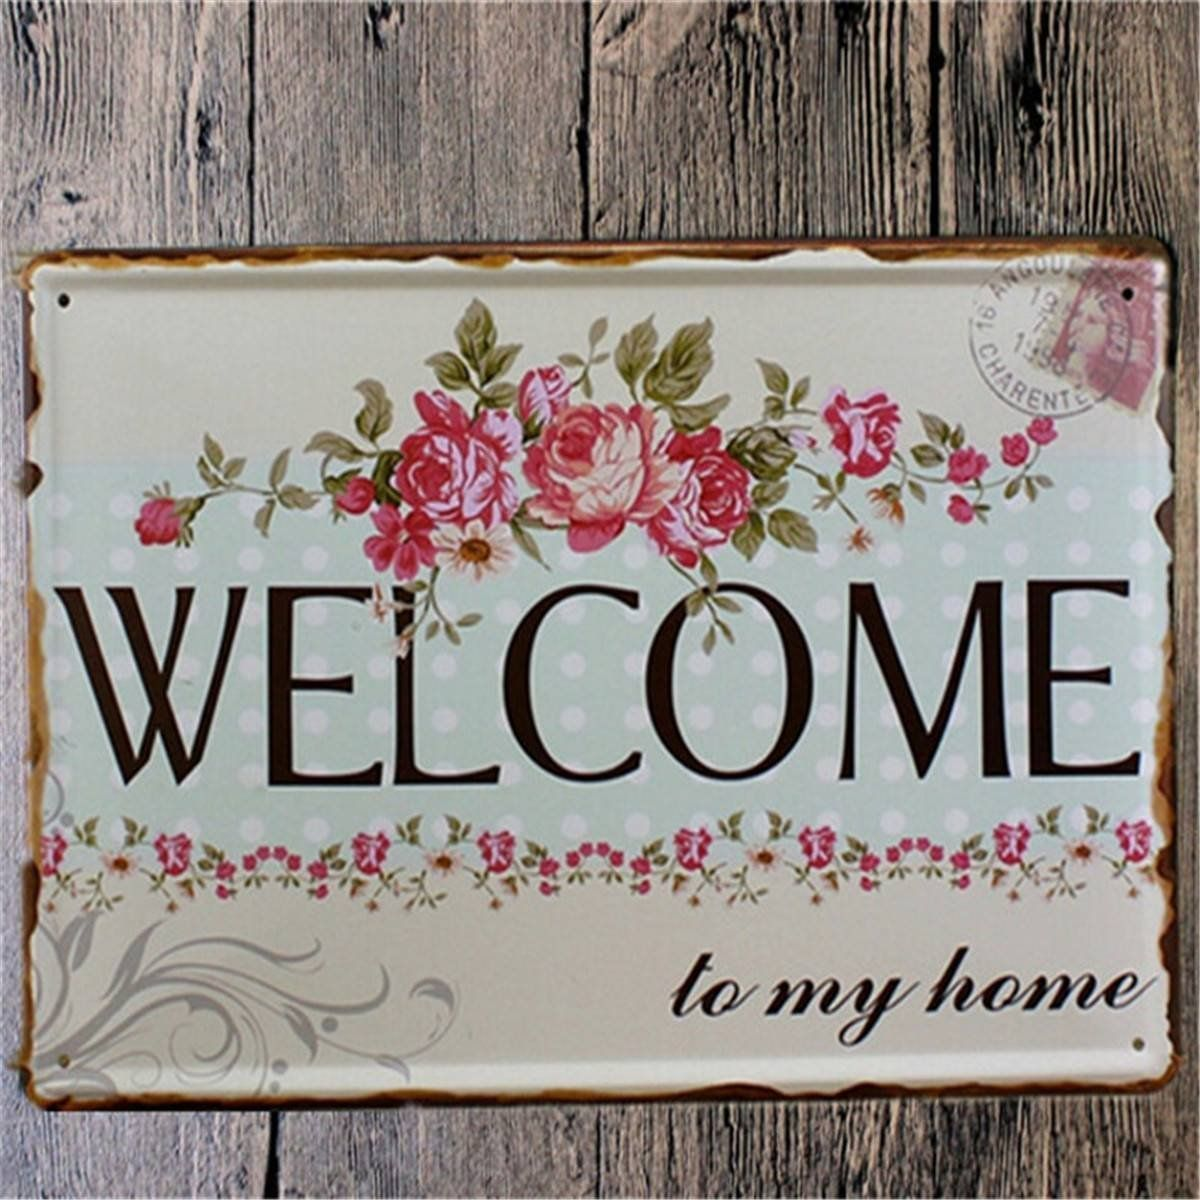 Vintage Shabby Chic Home Decor: Welcome Home Metal Shabby Chic Vintage Sign Home Wall